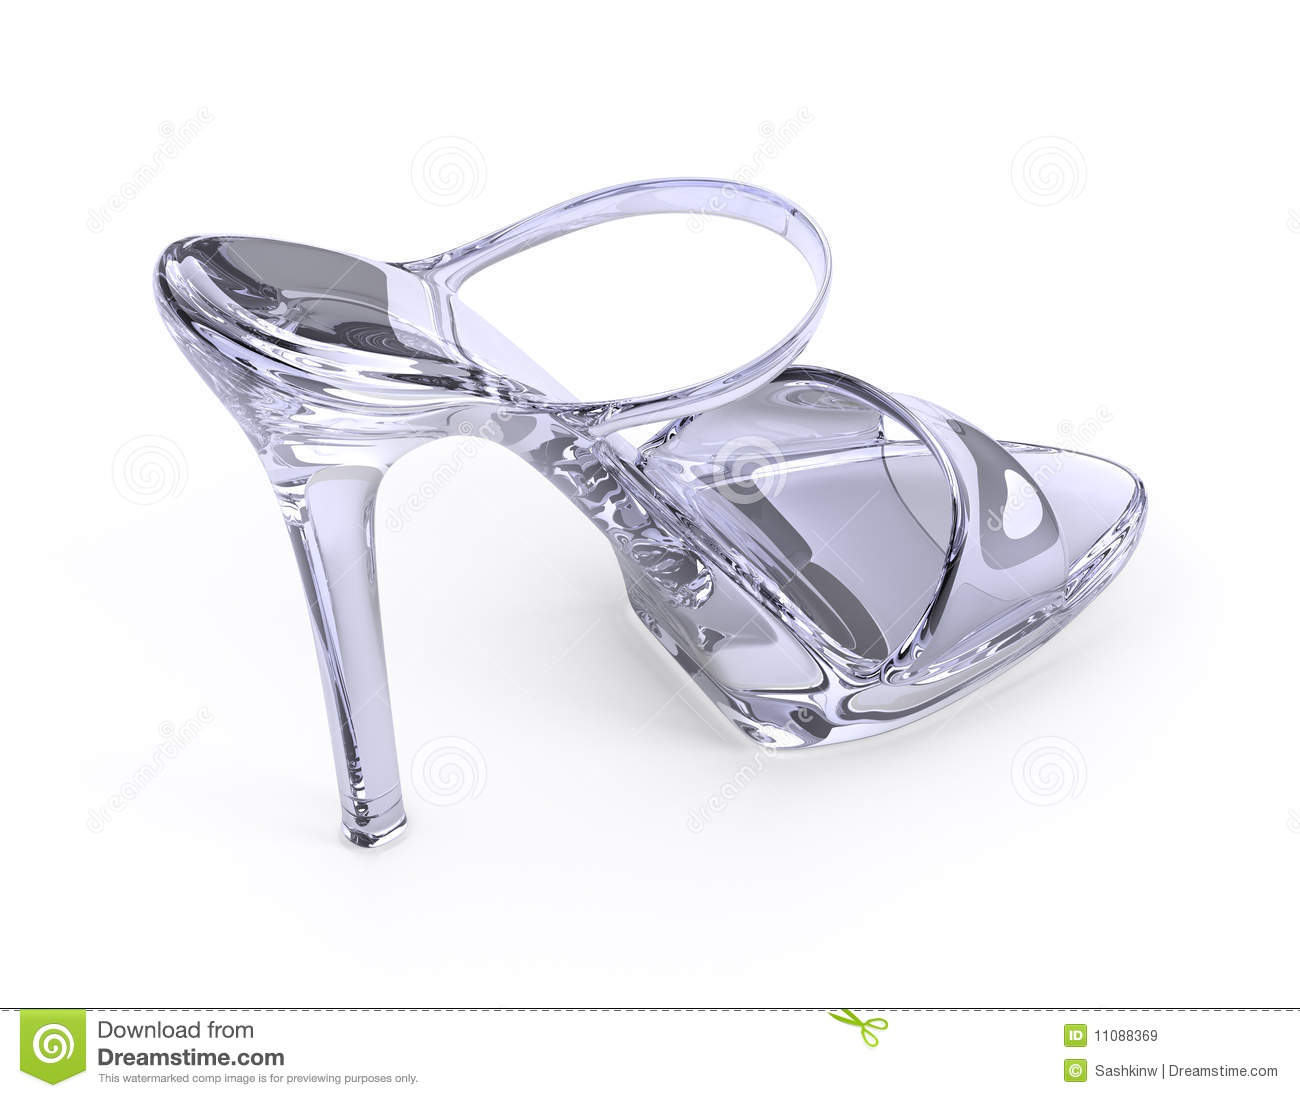 crystal modern high heels shoe royalty free stock images. Black Bedroom Furniture Sets. Home Design Ideas